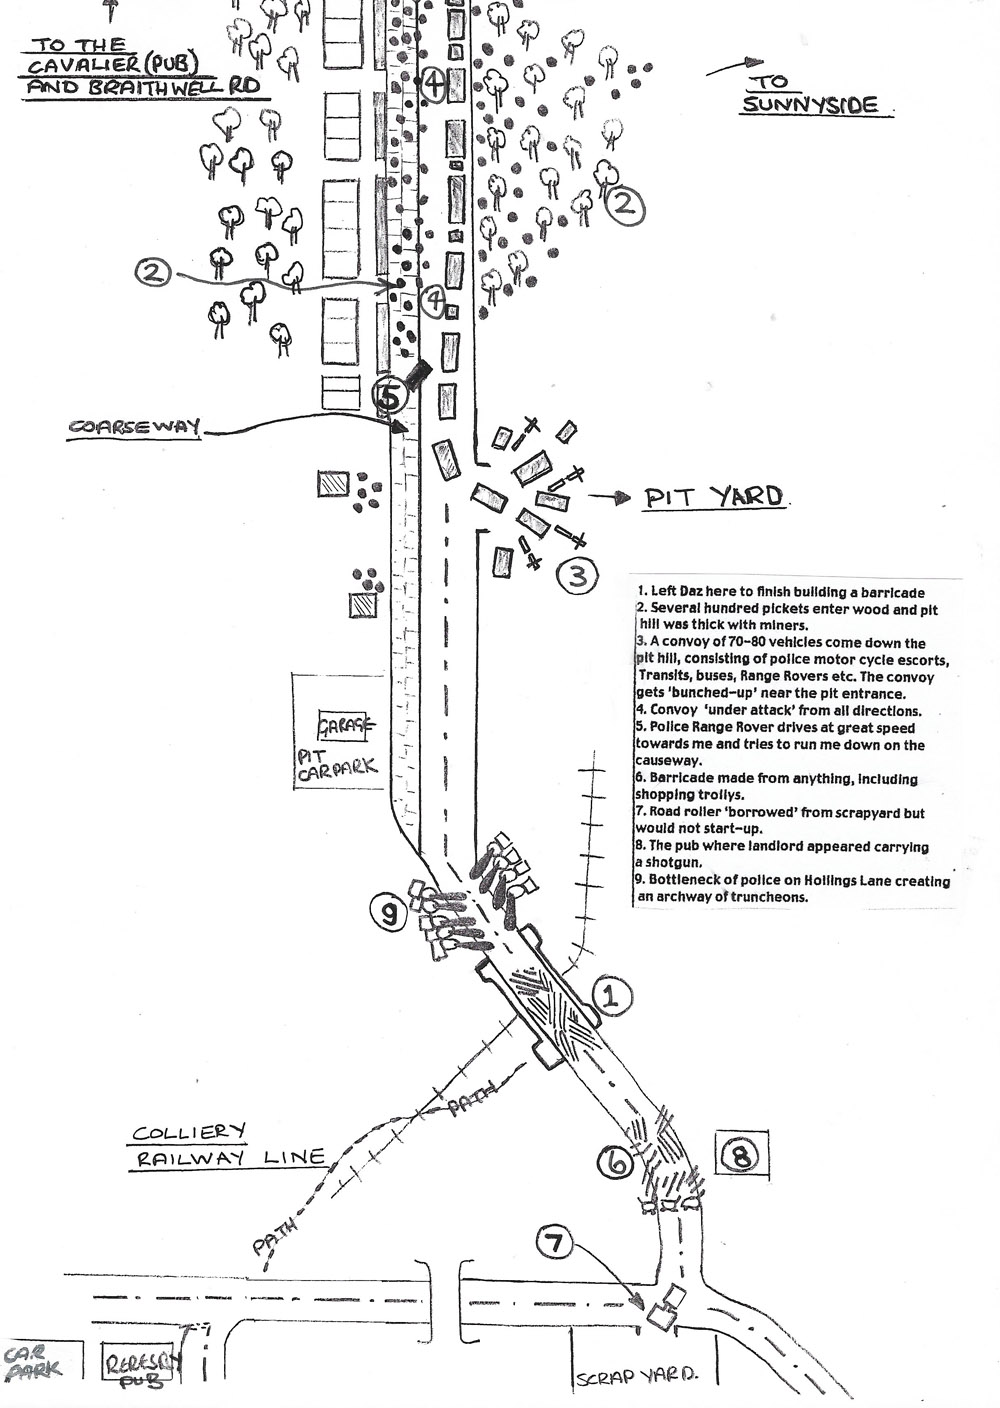 Silverwood Colliery. September 28th 1984. Diagram drawn by Bruce Wilson explaining the events of that morning.